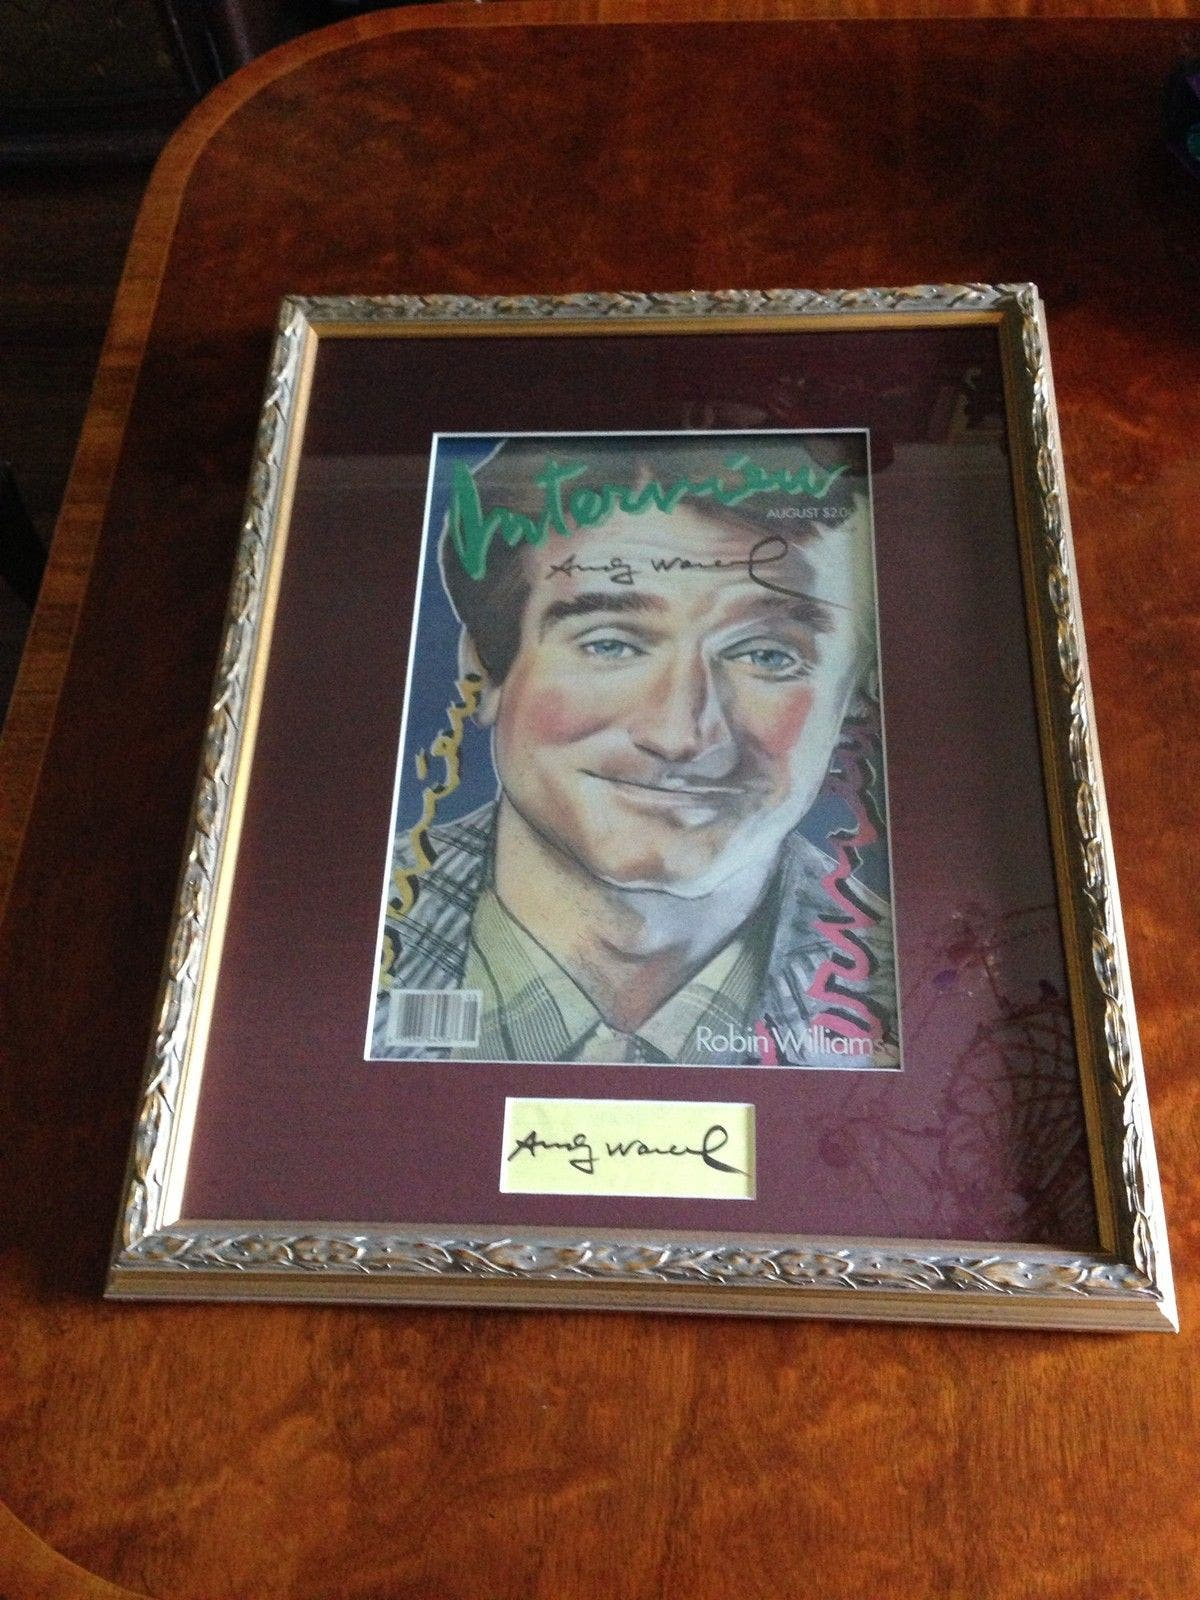 This Signed Andy Warhol Cover of Robin Williams Costs Over $1,000,000